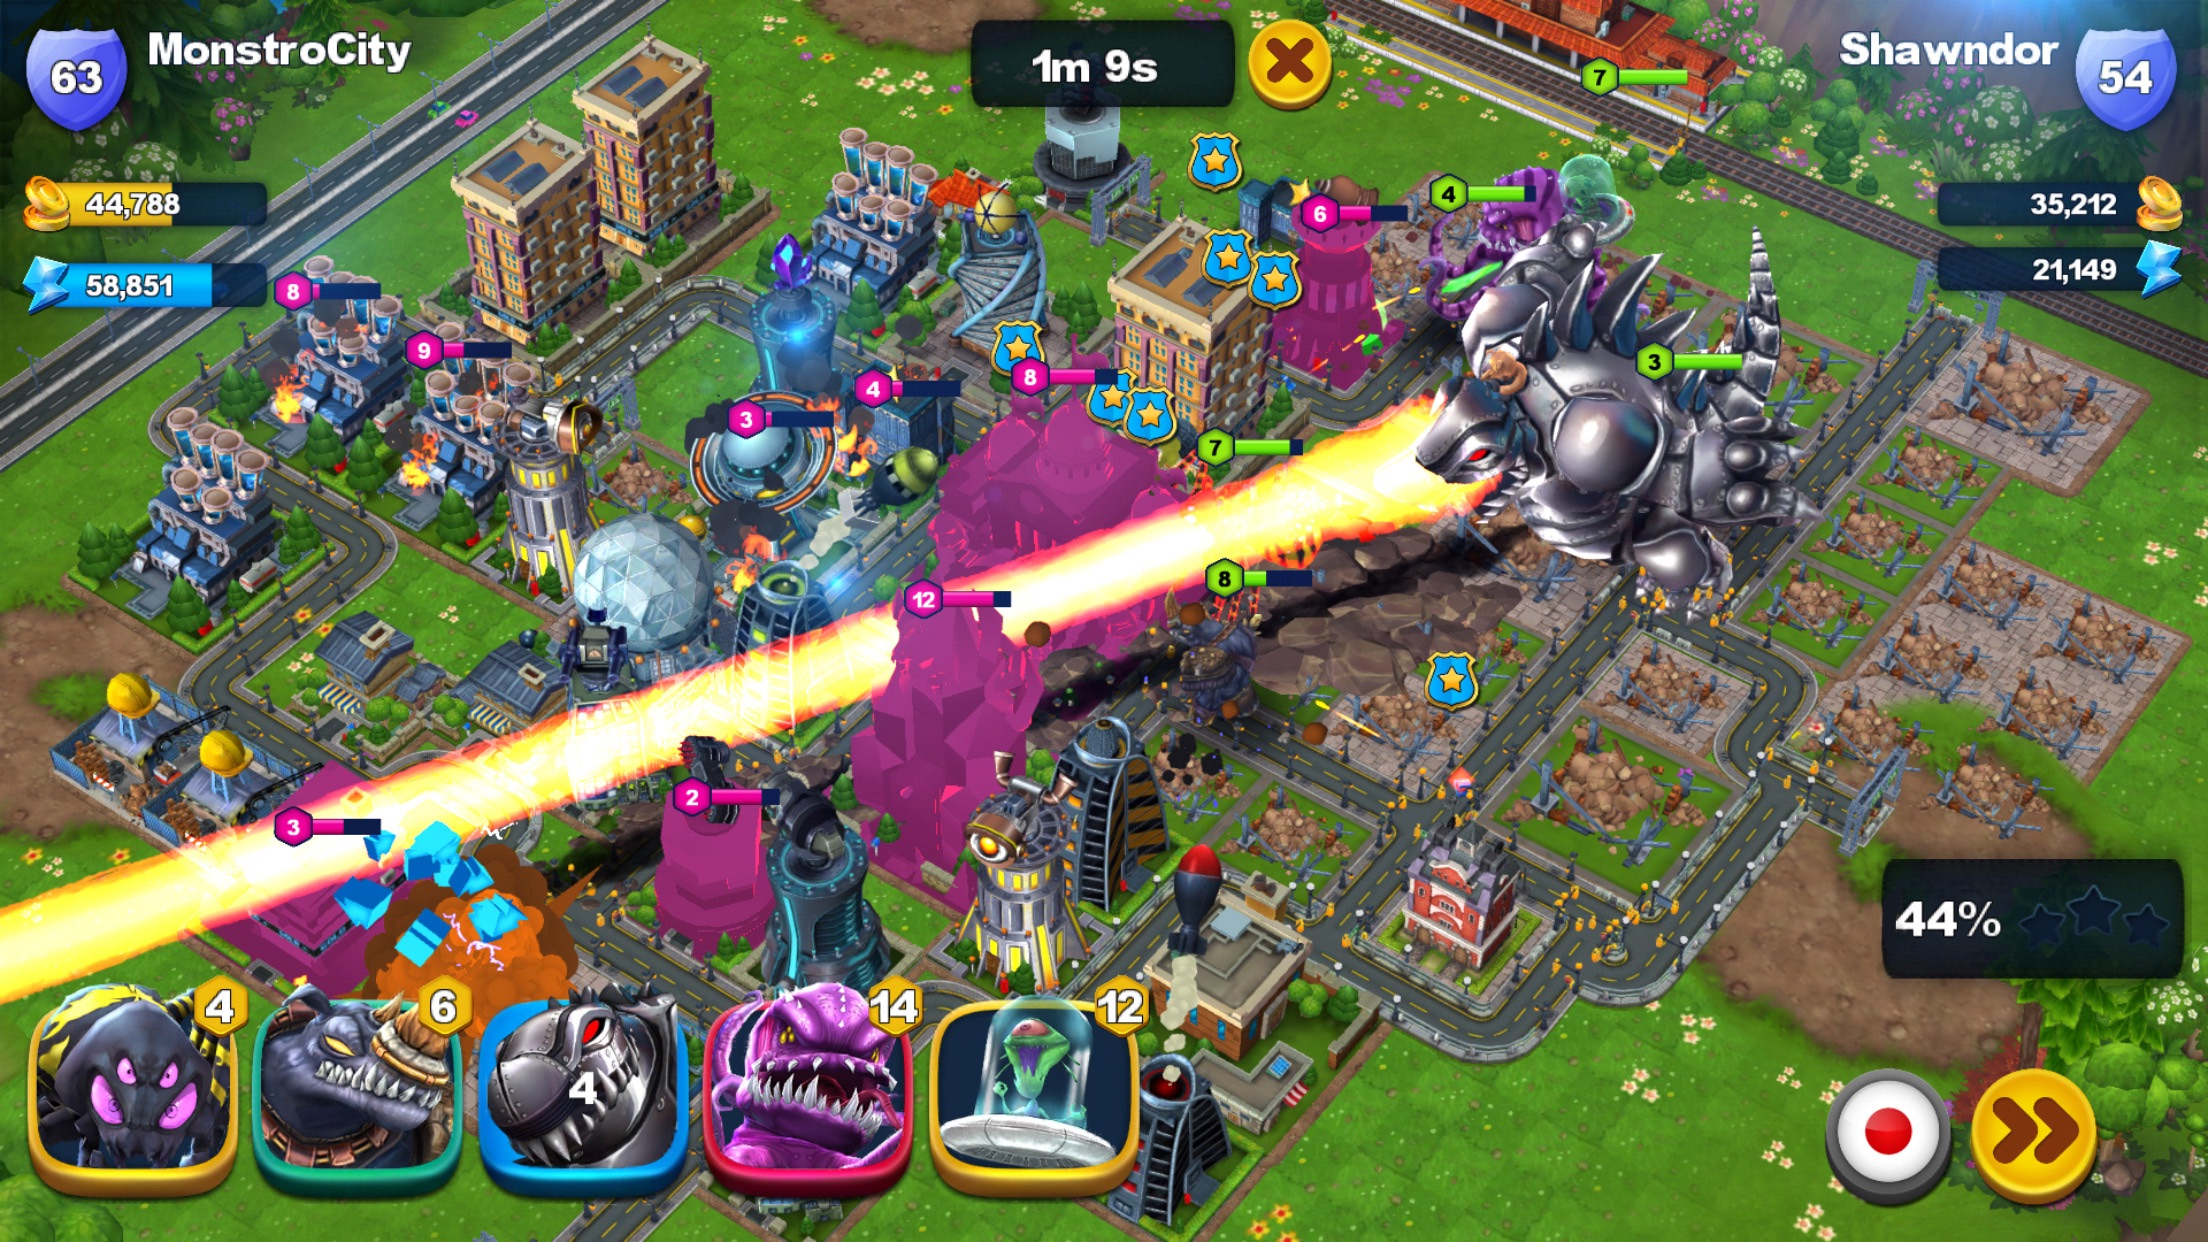 MonstroCity: Rampage Screenshot